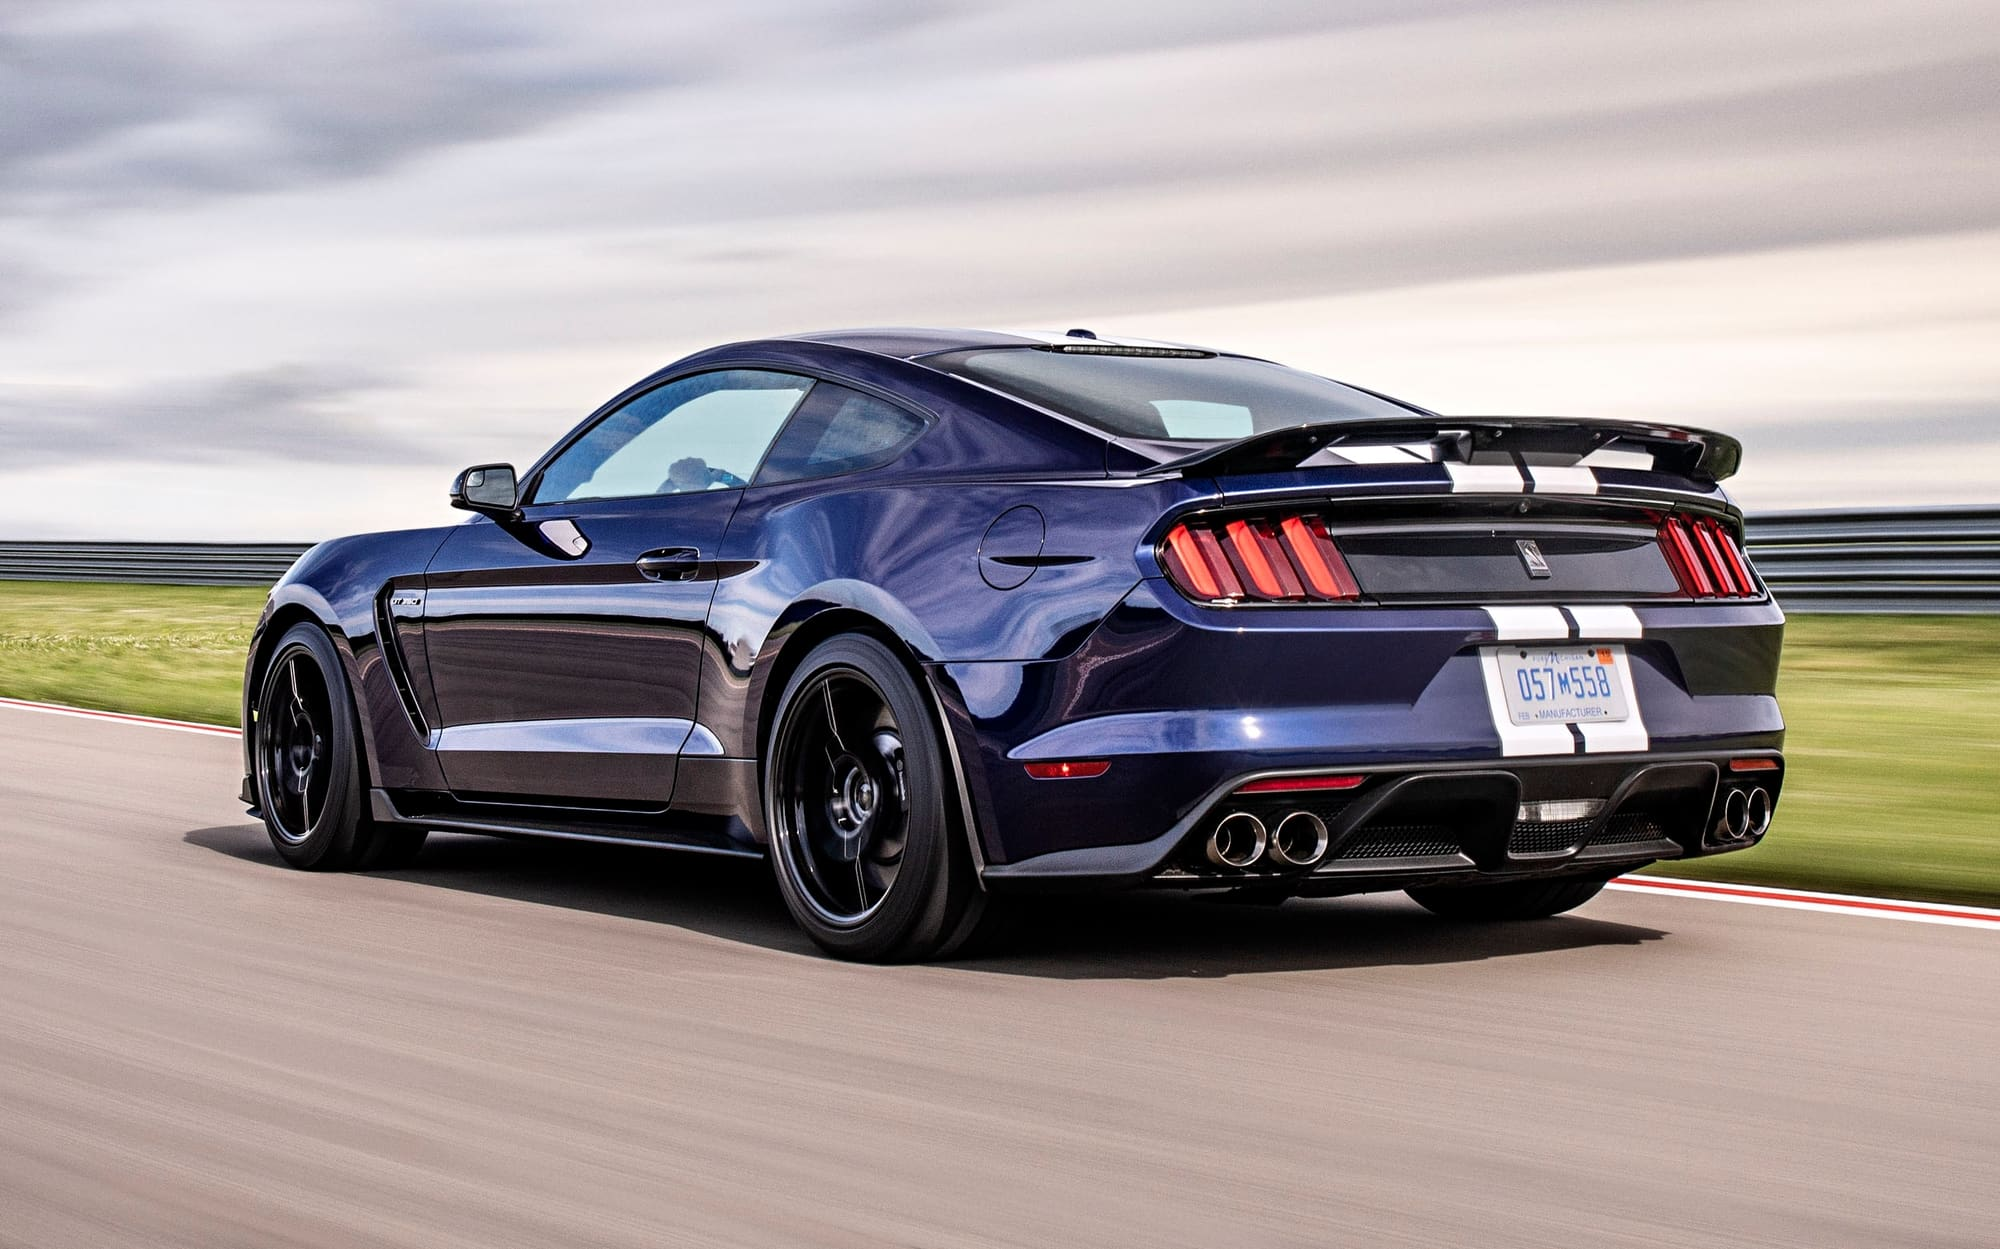 2020 Shelby GT500 side view on road course